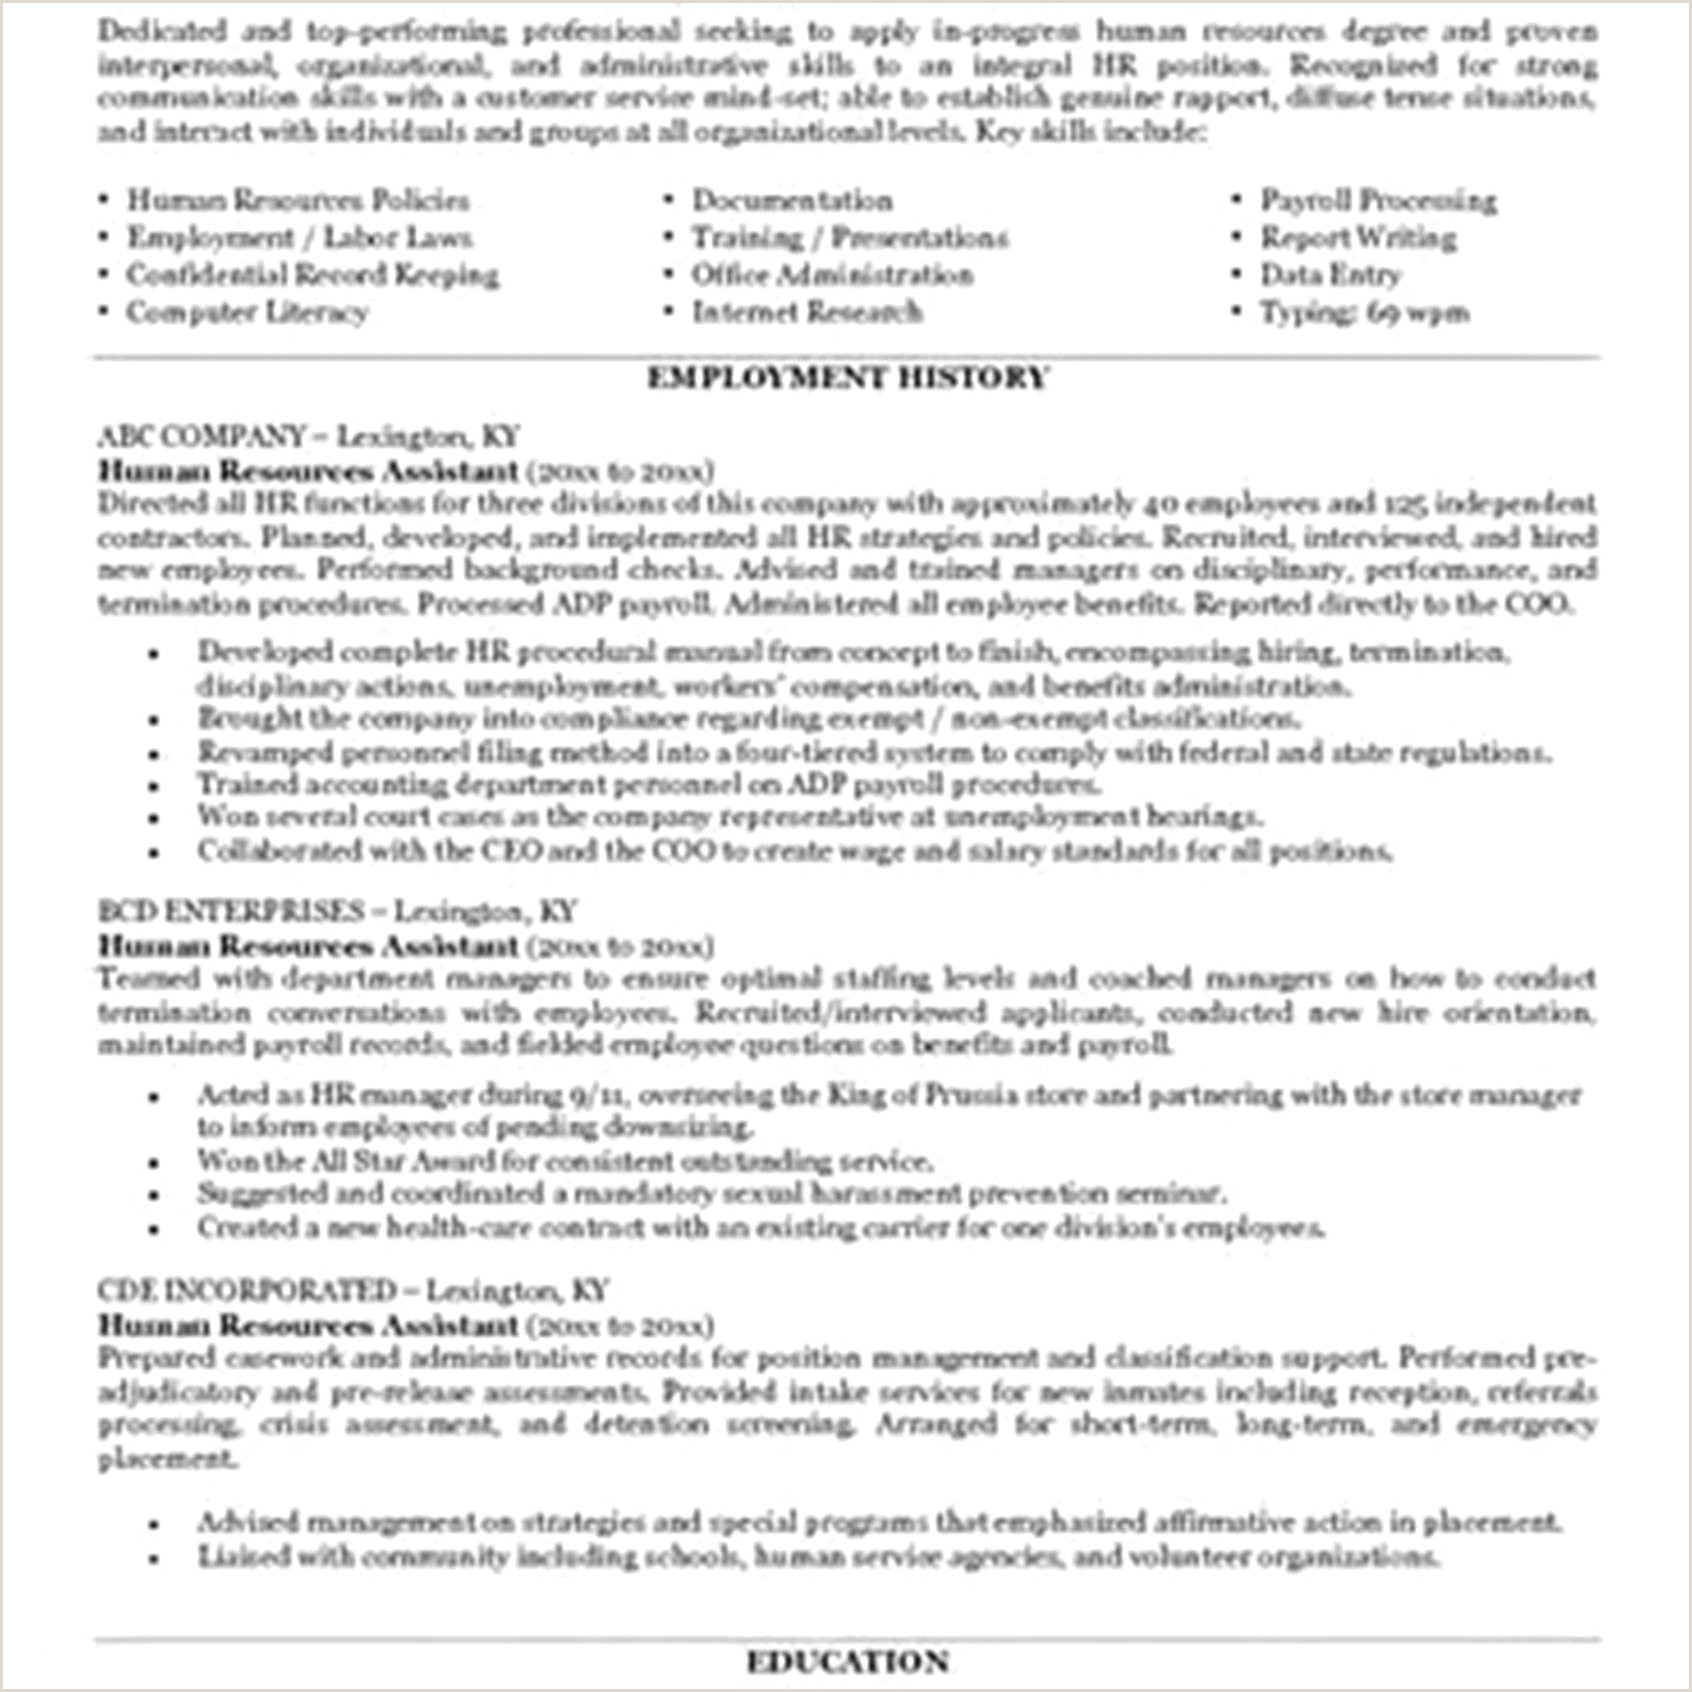 Human Resource Manager Resume Examples Human Resources Manager Resume Human Resource Manager Resume